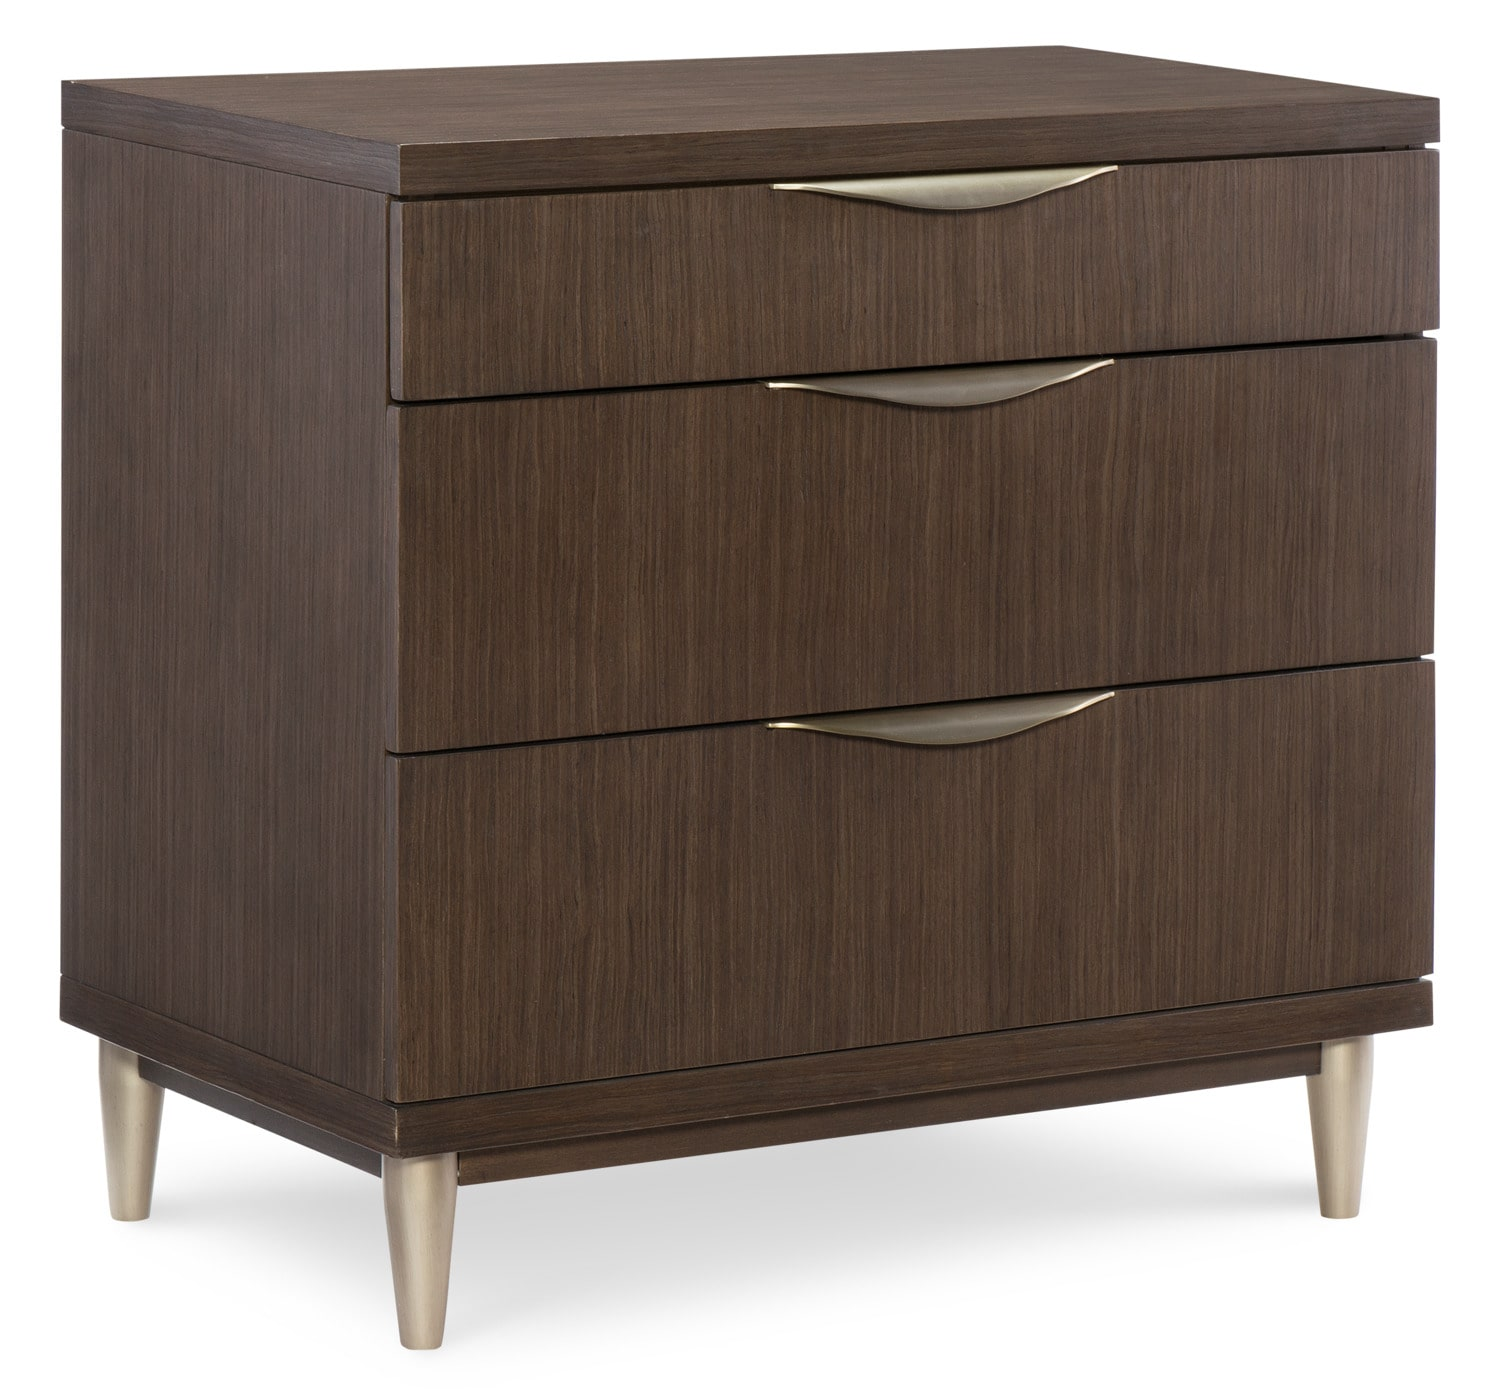 Bedroom Furniture - Rachael Ray Soho 3-Drawer Nightstand - Ash Brown